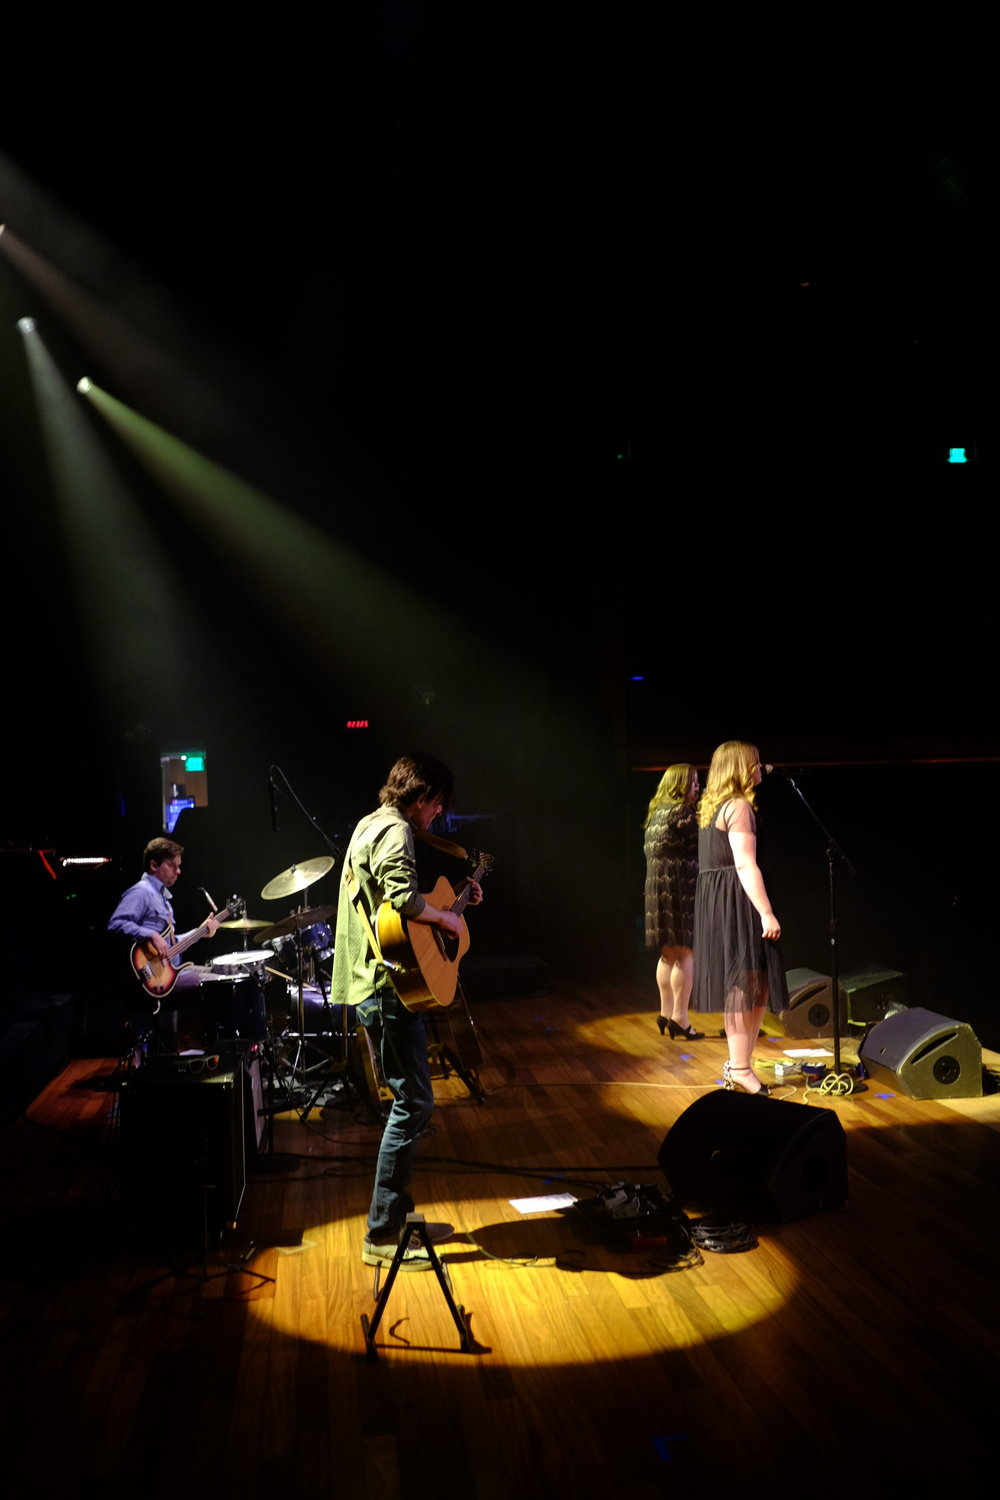 A great shot by Mark Slagle taken at the Ryman during The Secret Sisters set prior to Jason Isbell